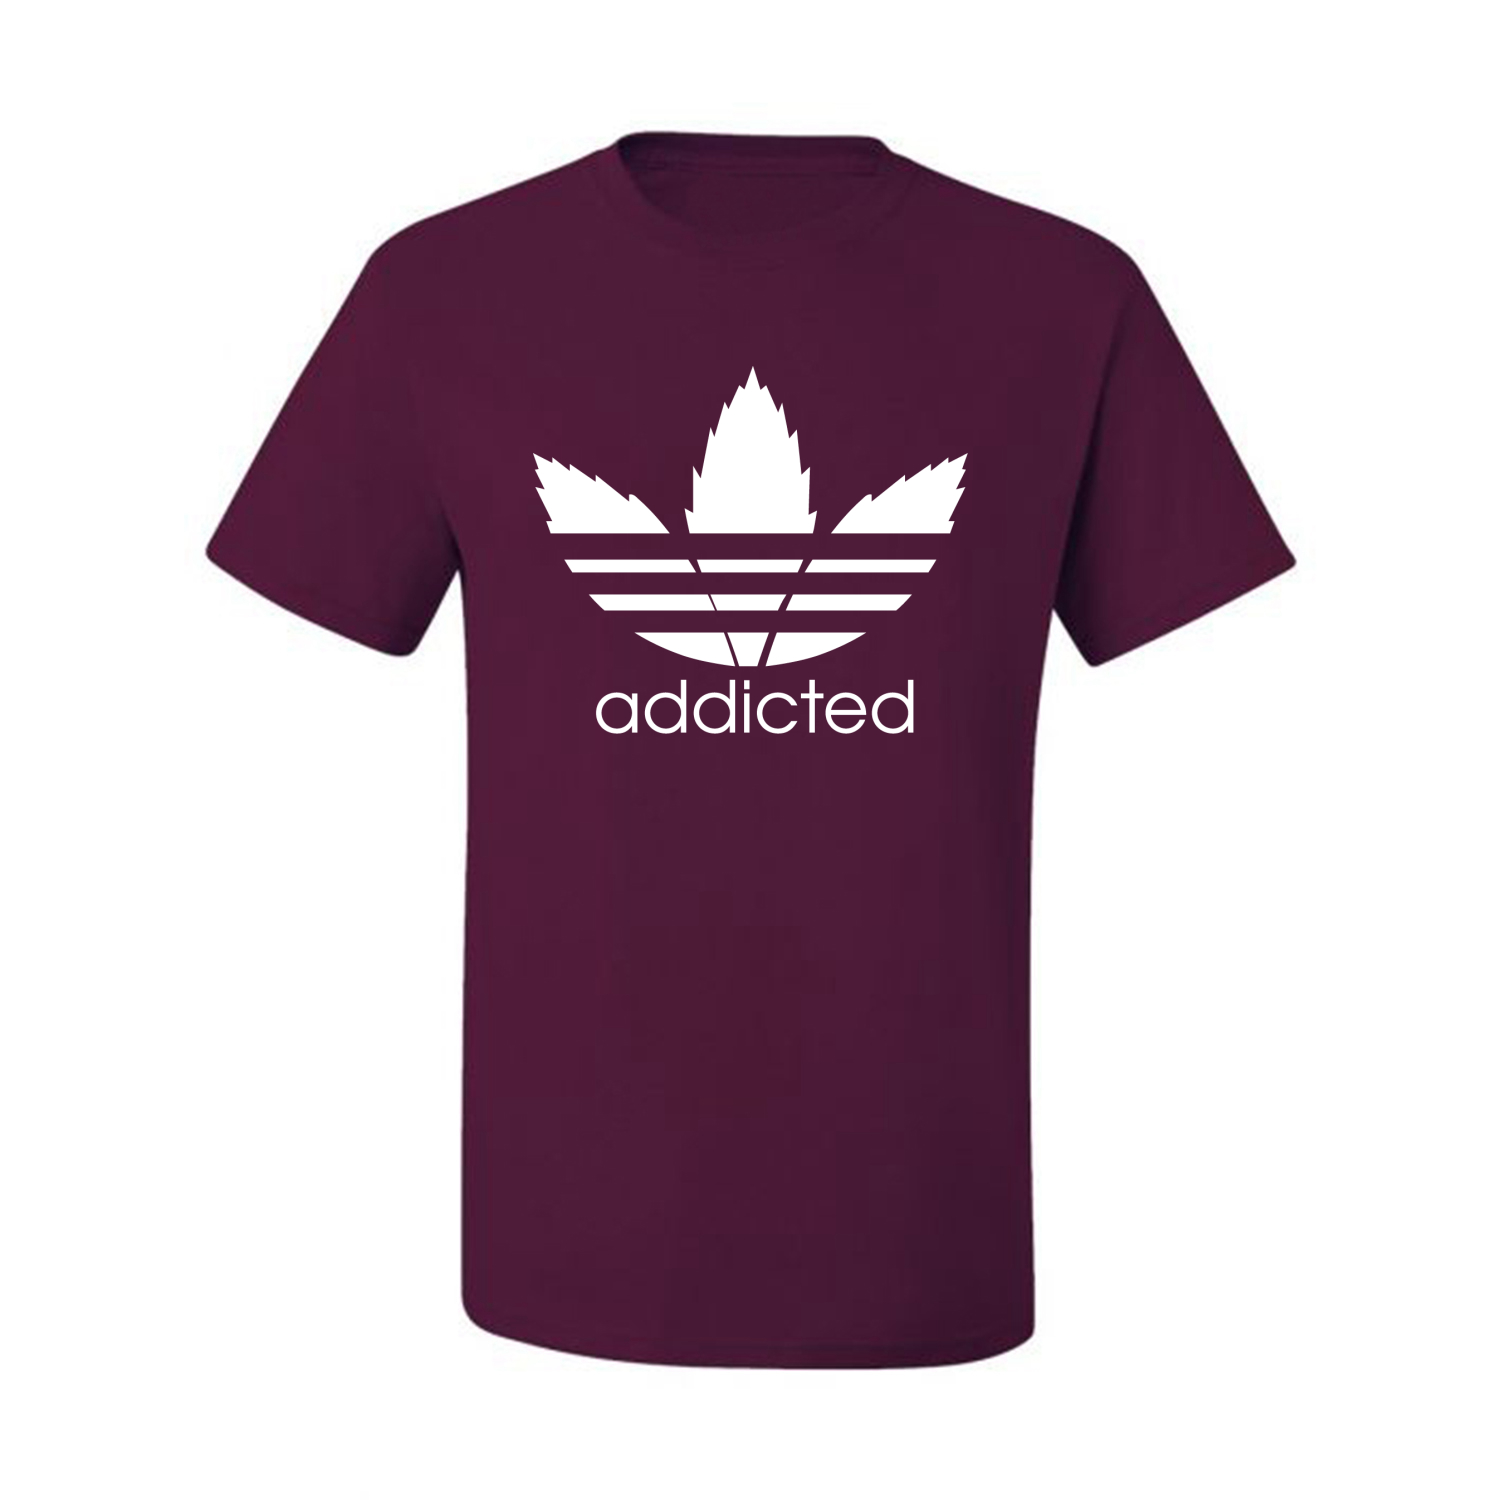 Addicted-White-Pot-Leaf-Mens-Weed-T-Shirt-Graphic-Parody-Tee thumbnail 22